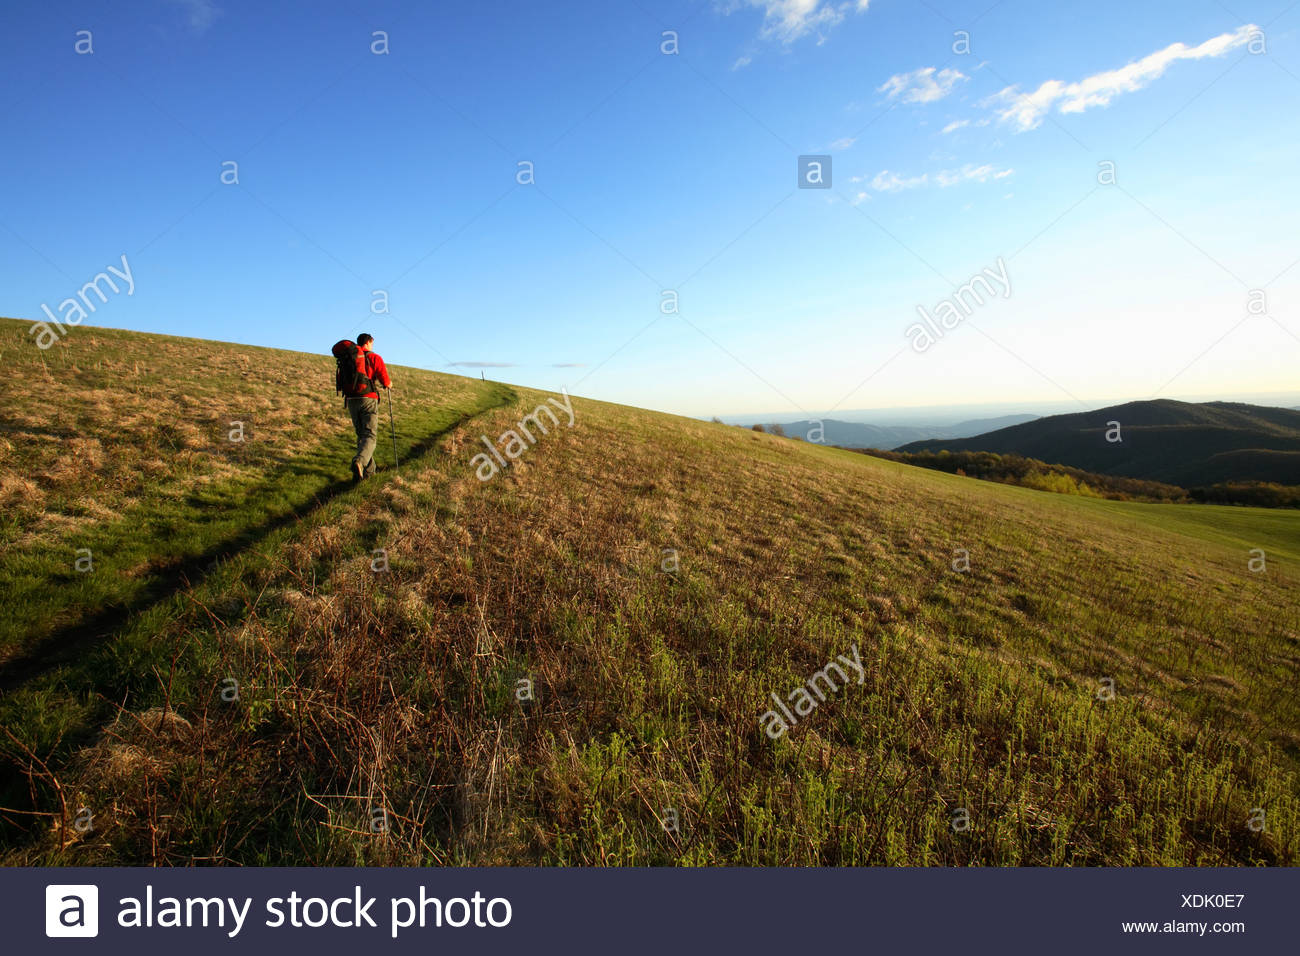 Male backpacker climbs the final stretch of the Appalachian Trail to the summit of Max Patch Bald west of Asheville, NC - Stock Image